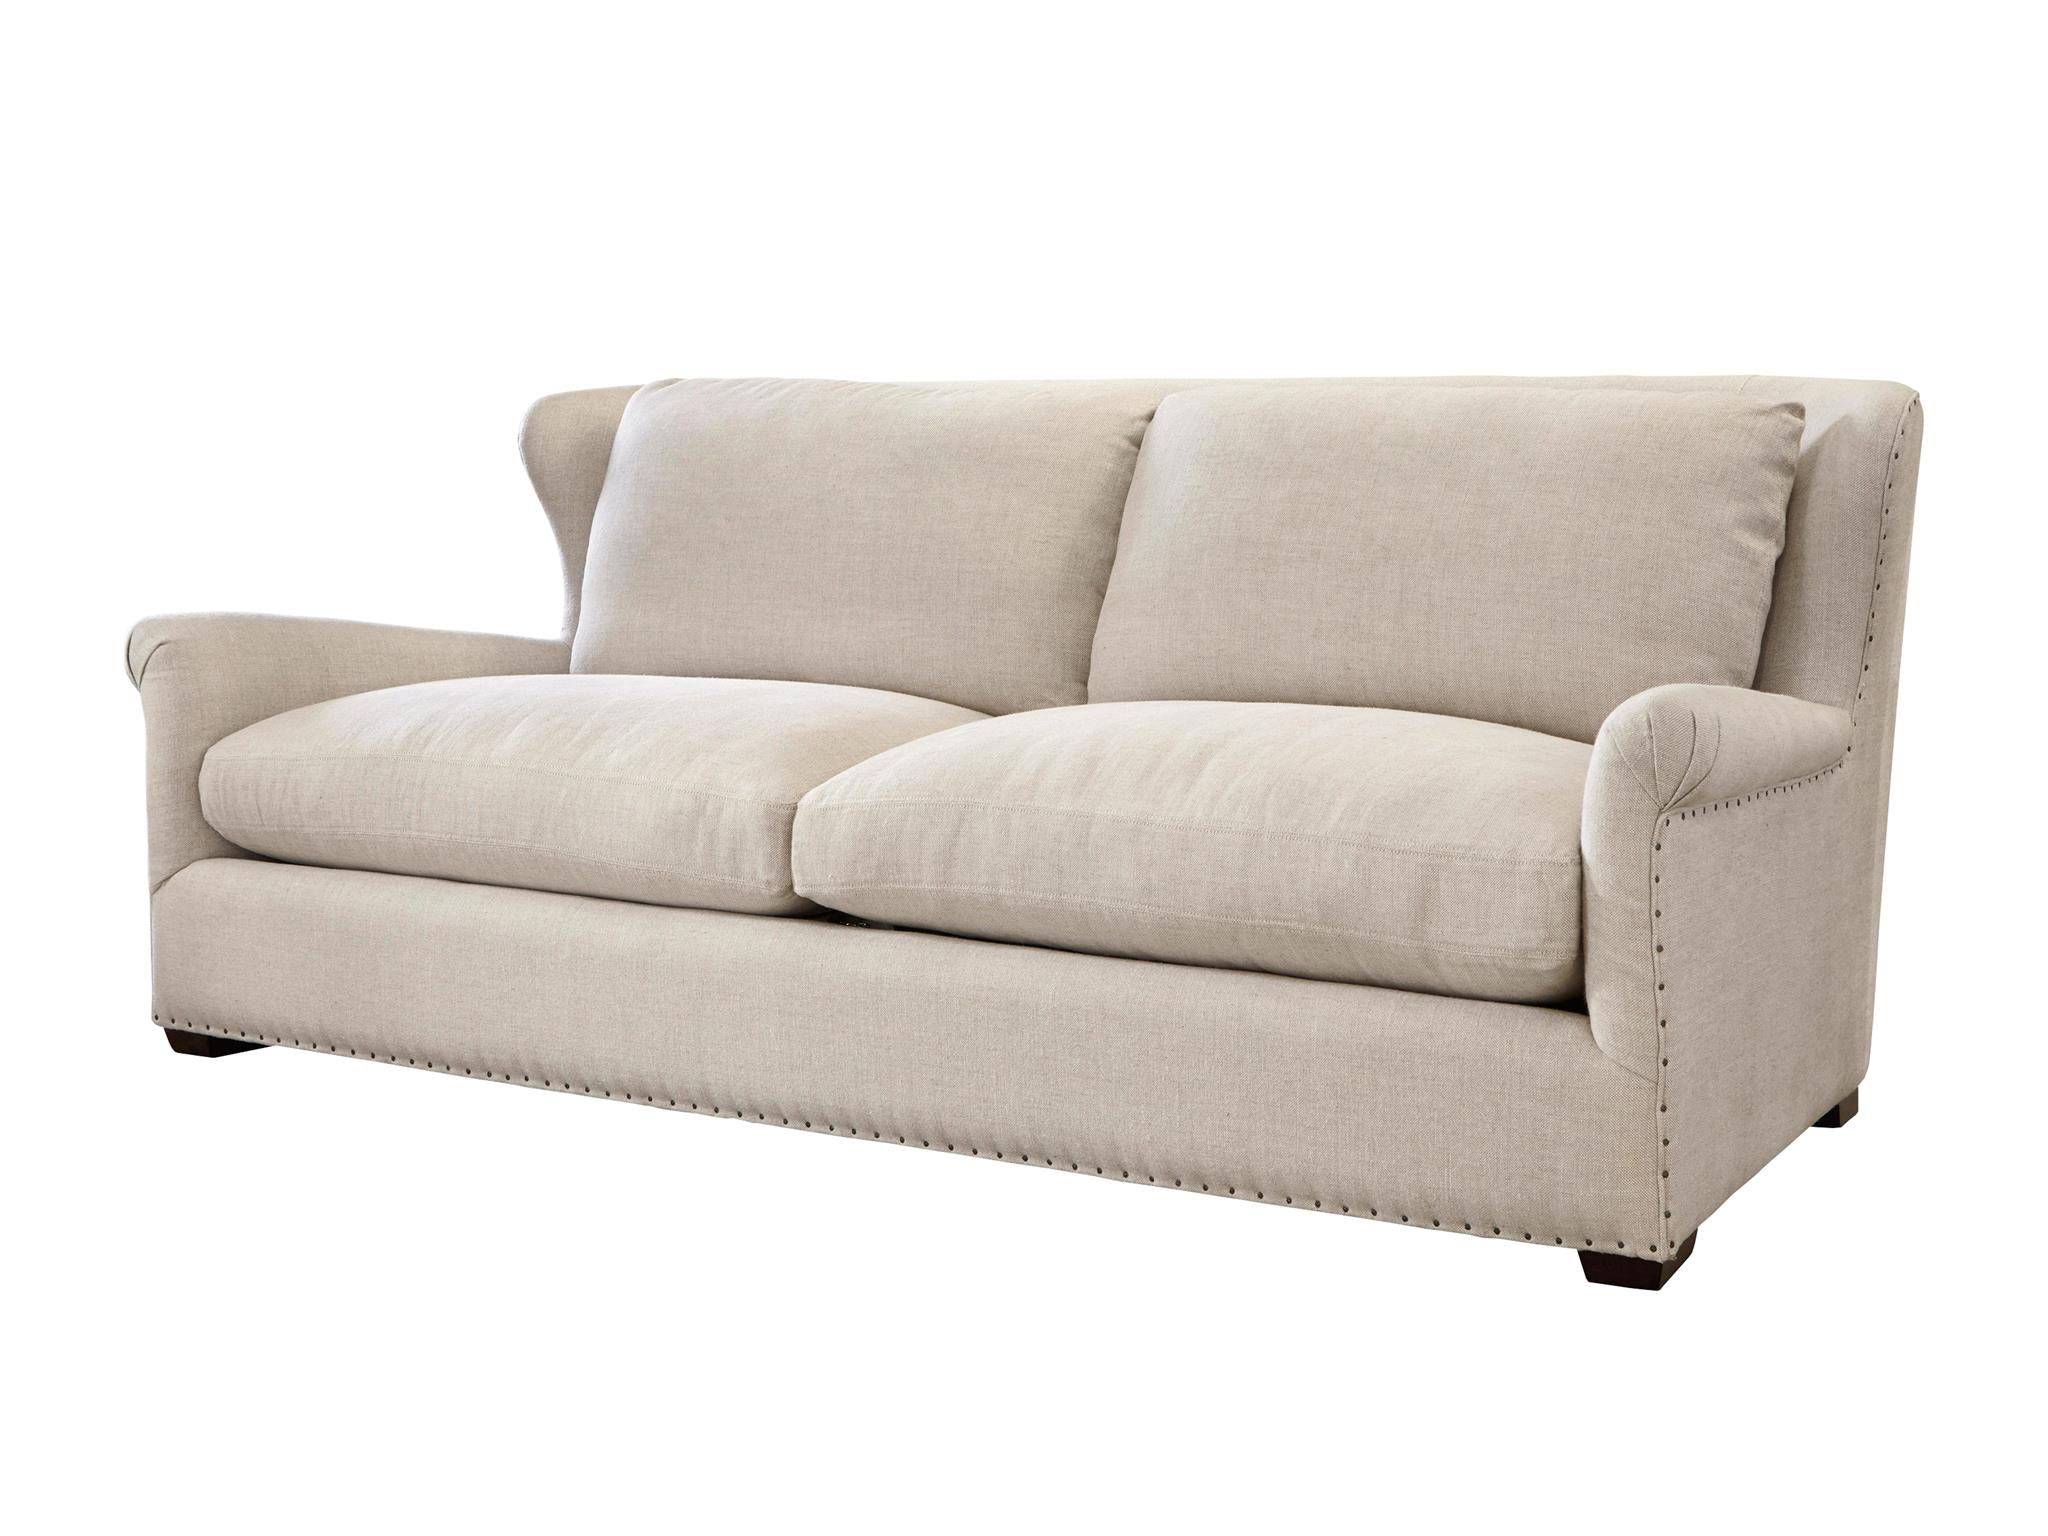 Universal Furniture | Moderne Muse | Haven Sofa With Regard To Haven Sofa Chairs (Photo 1 of 20)